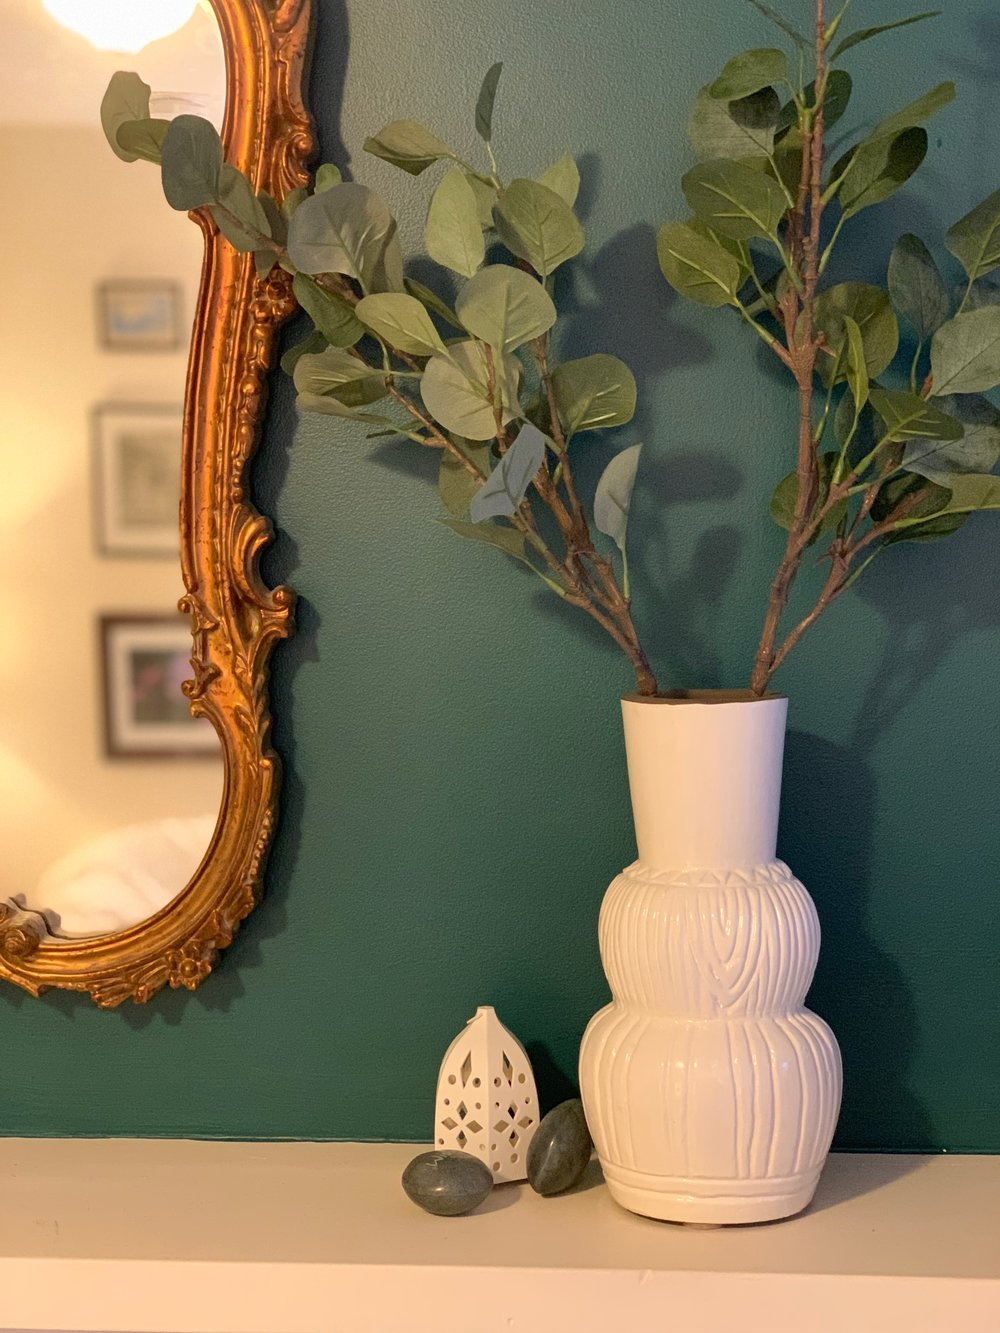 White terra cotta opalhouse vases, ikea lanterns and a vintage gold mirror on a benjamin moore deep teal wall